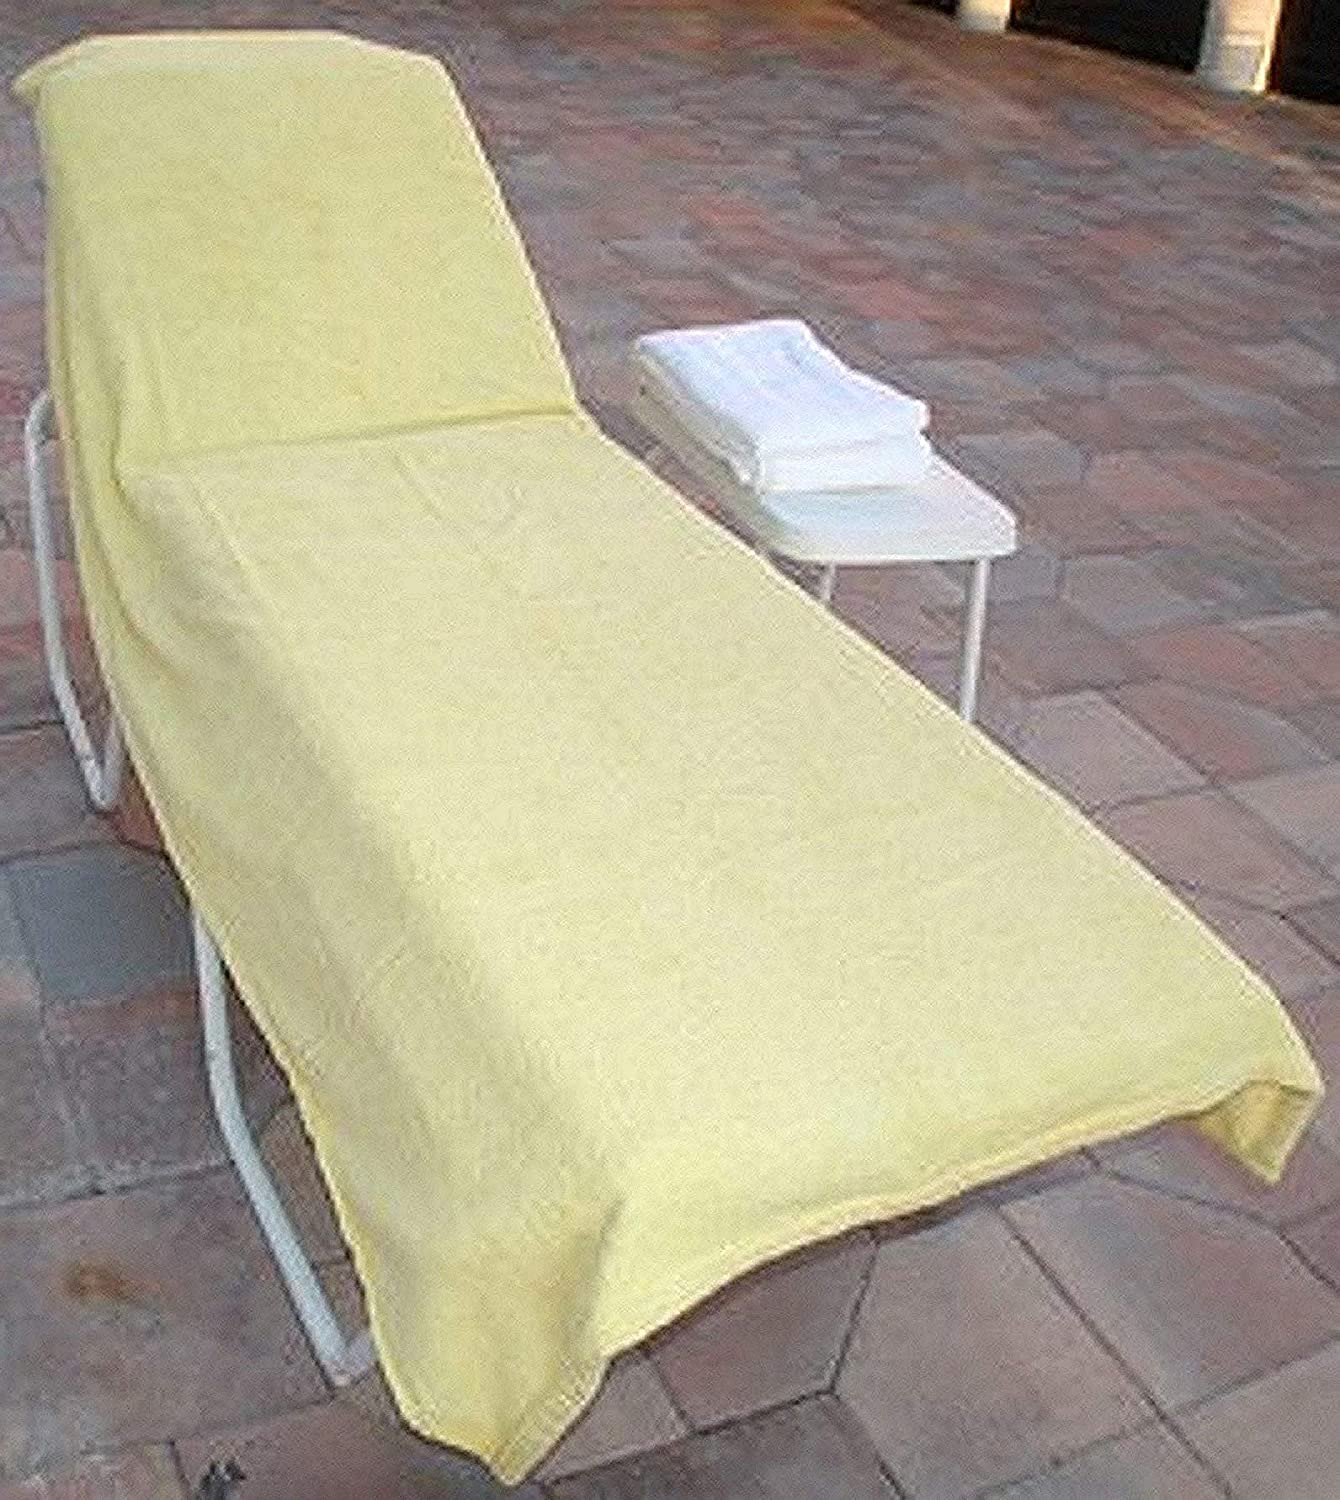 Chair Lounge Cover Luxury Covers Wonder for Pool -Spa Hotel-yellow